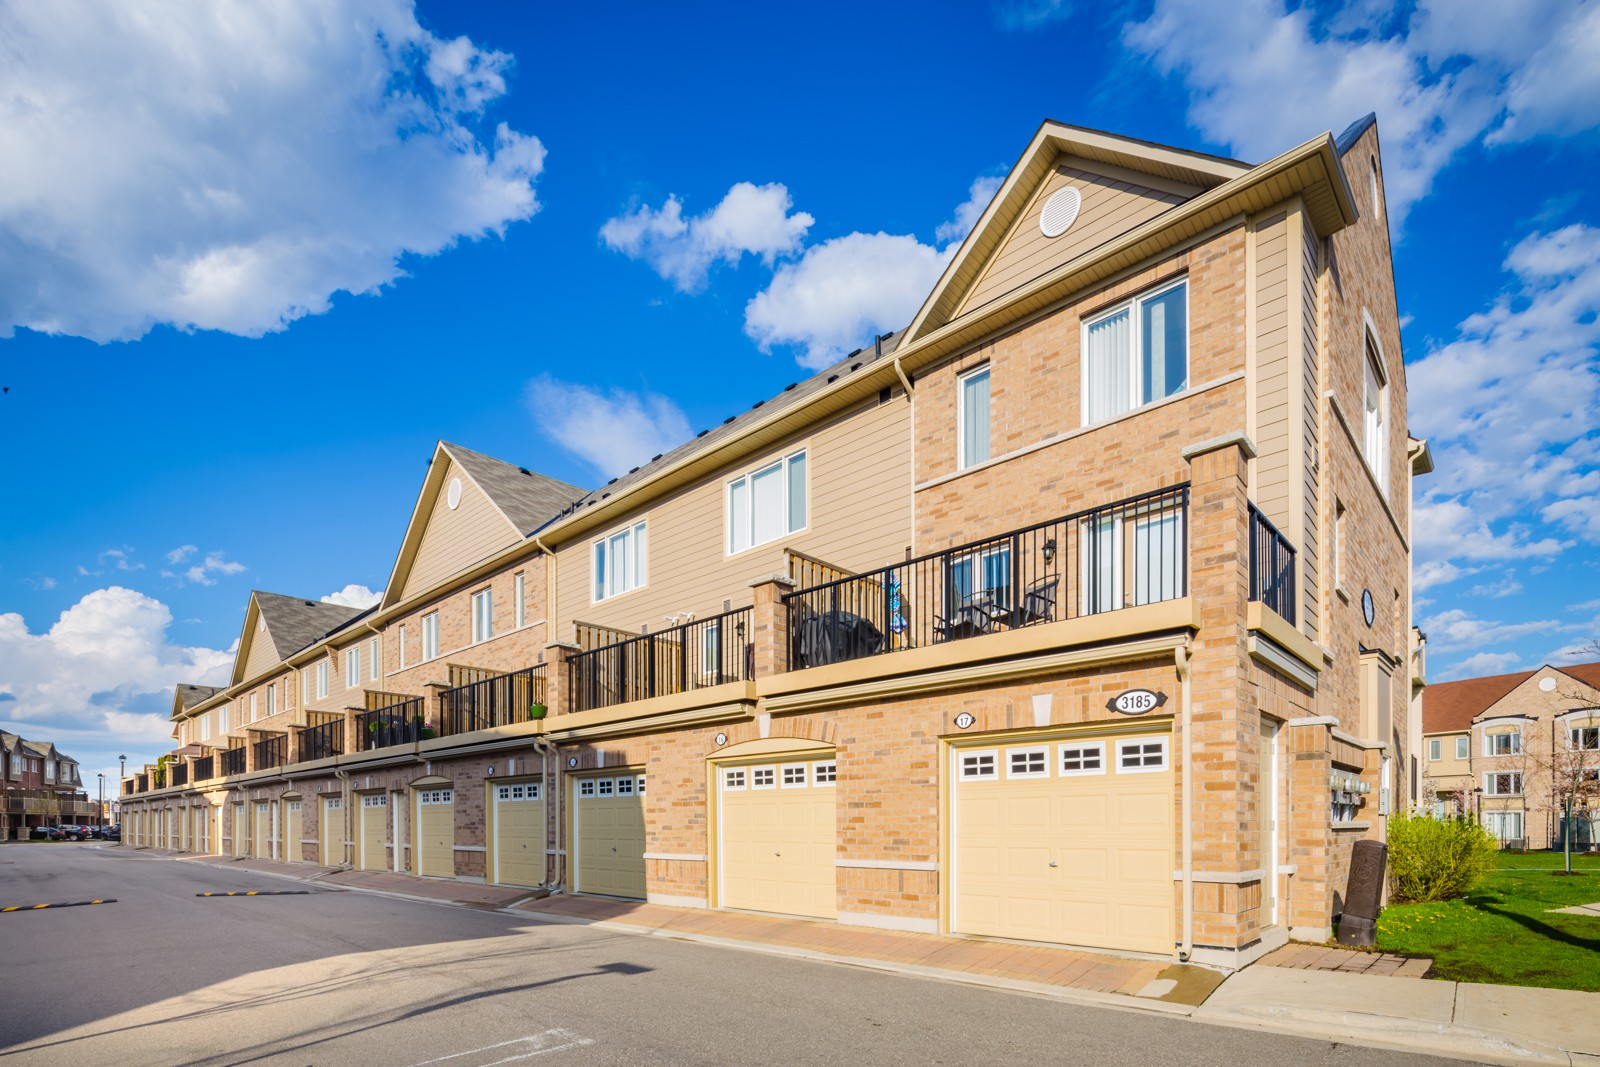 3185 Boxford Cres Townhouses at 3185 Boxford Cres, Mississauga 0